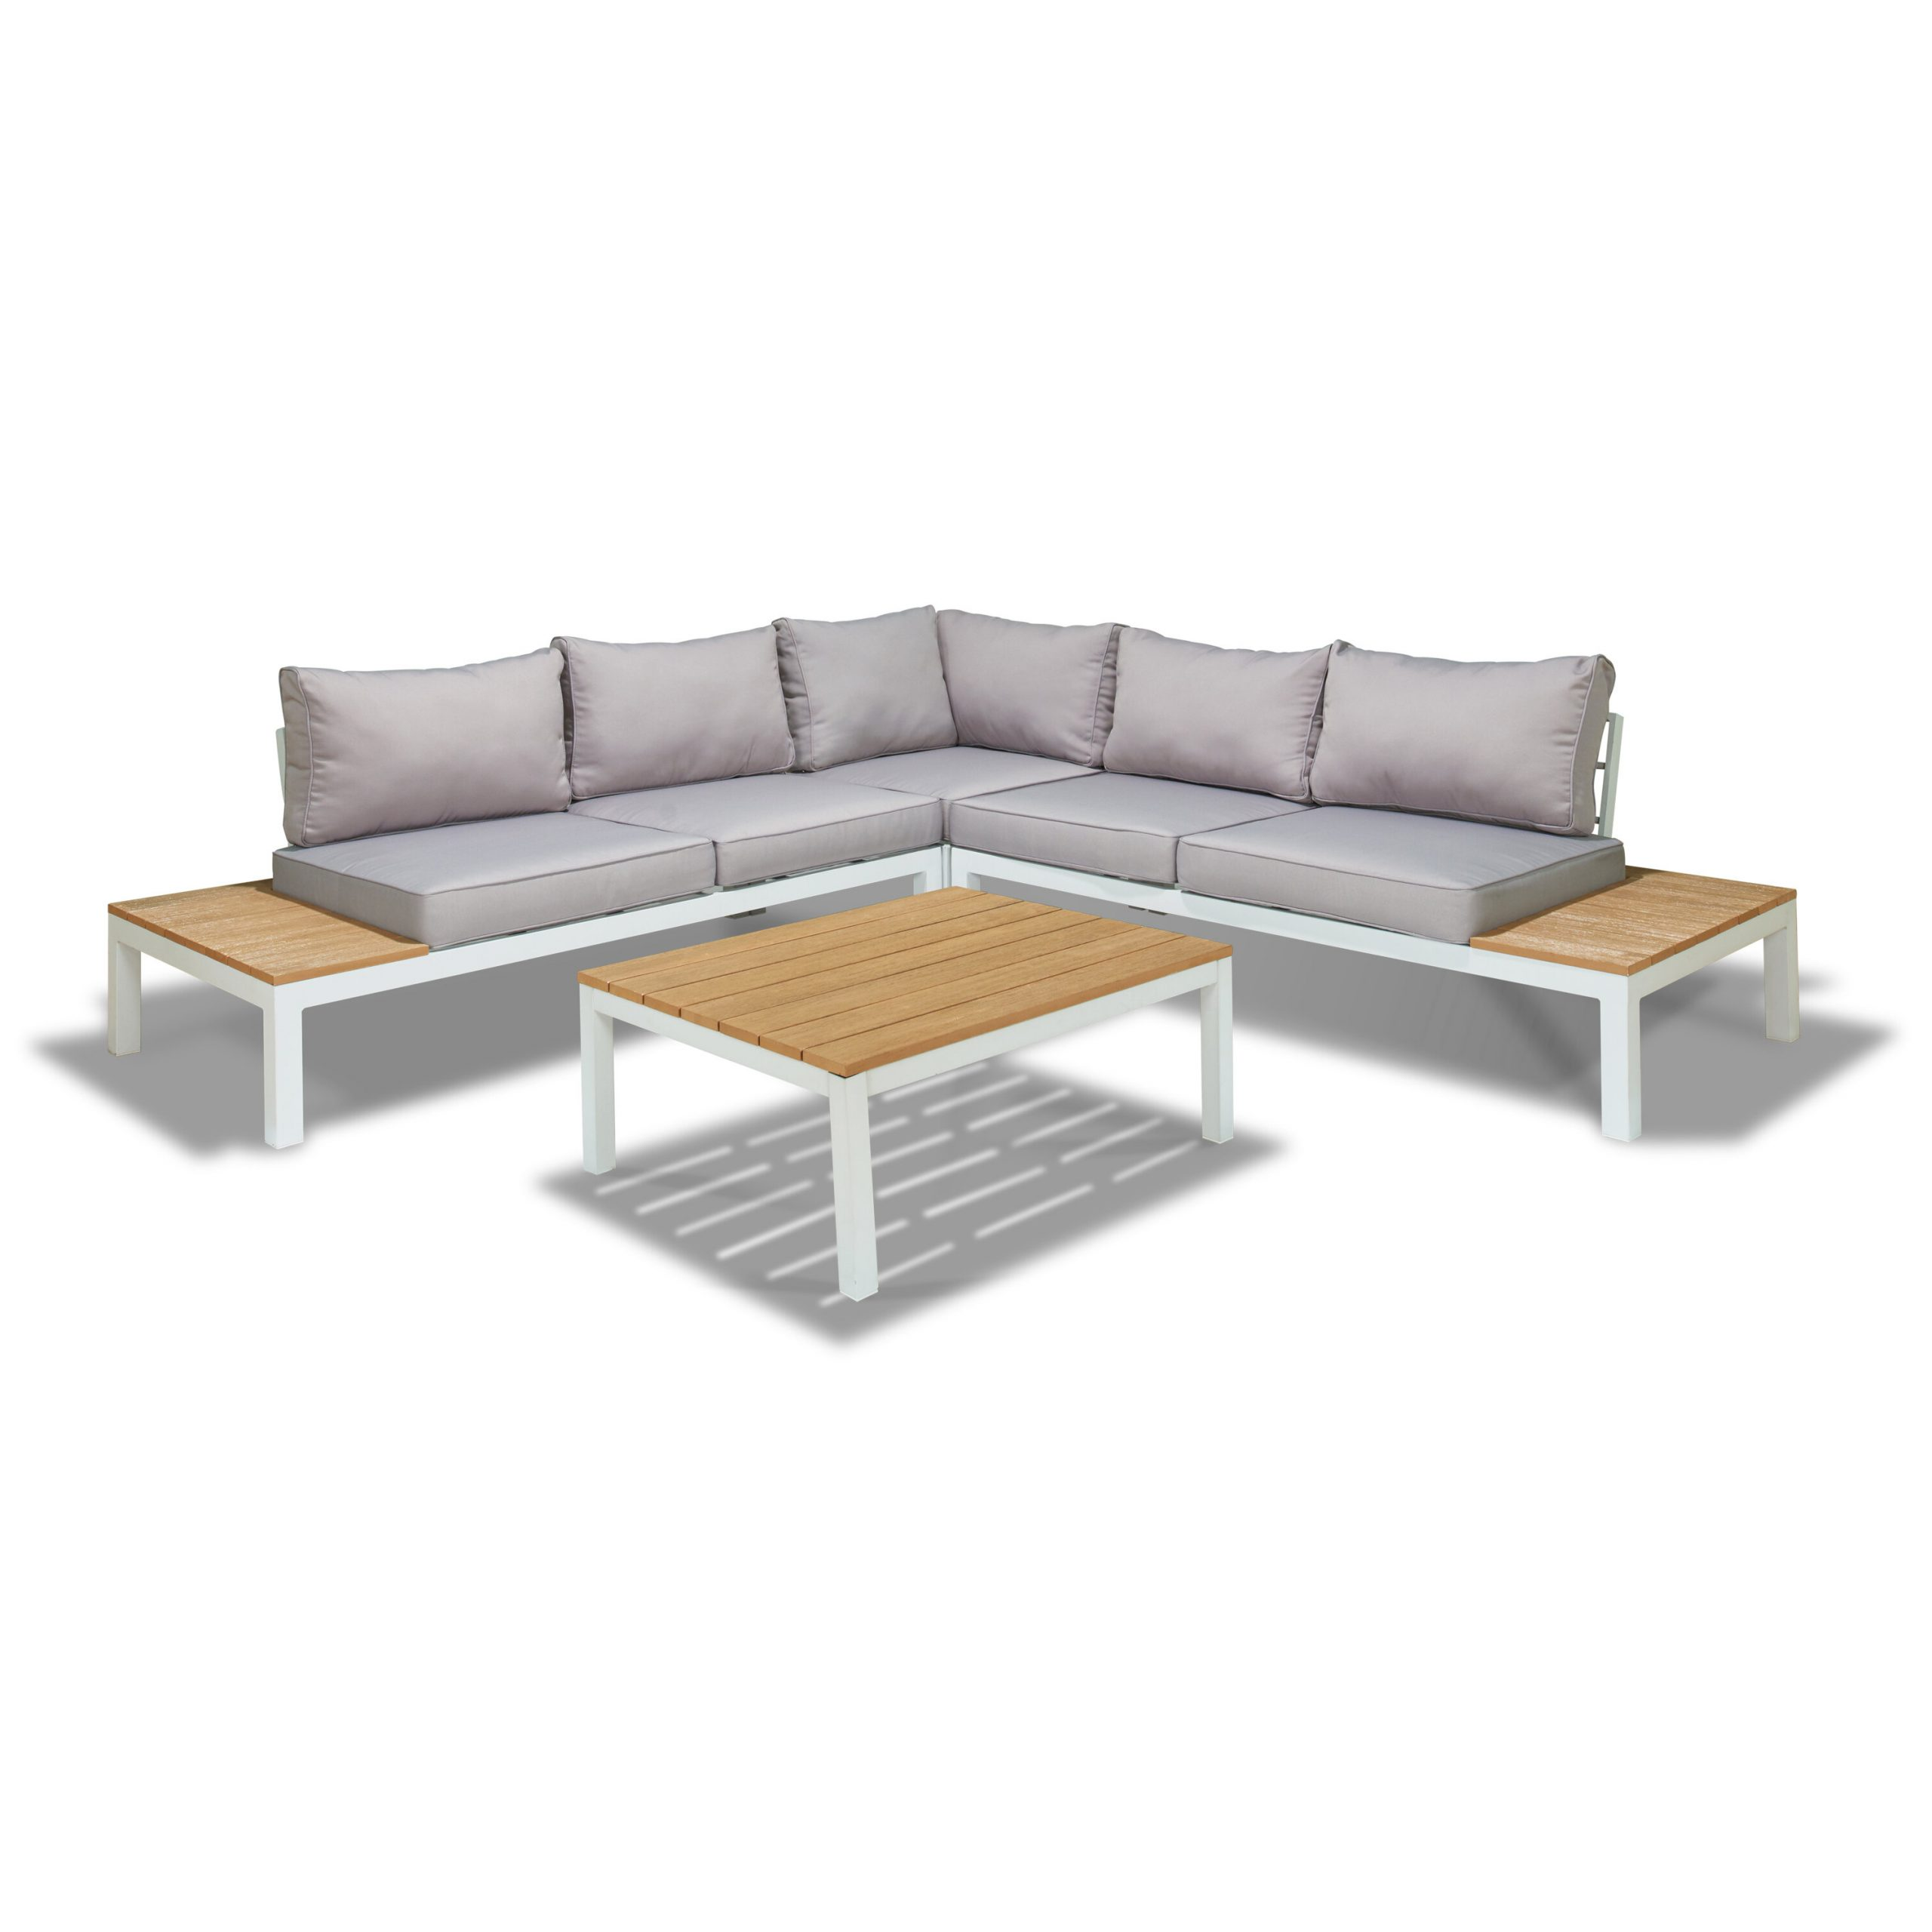 Schneider 4 Piece Sectional Seating Group With Cushion Within 2020 Olinda 3 Piece Sectionals Seating Group With Cushions (View 21 of 25)